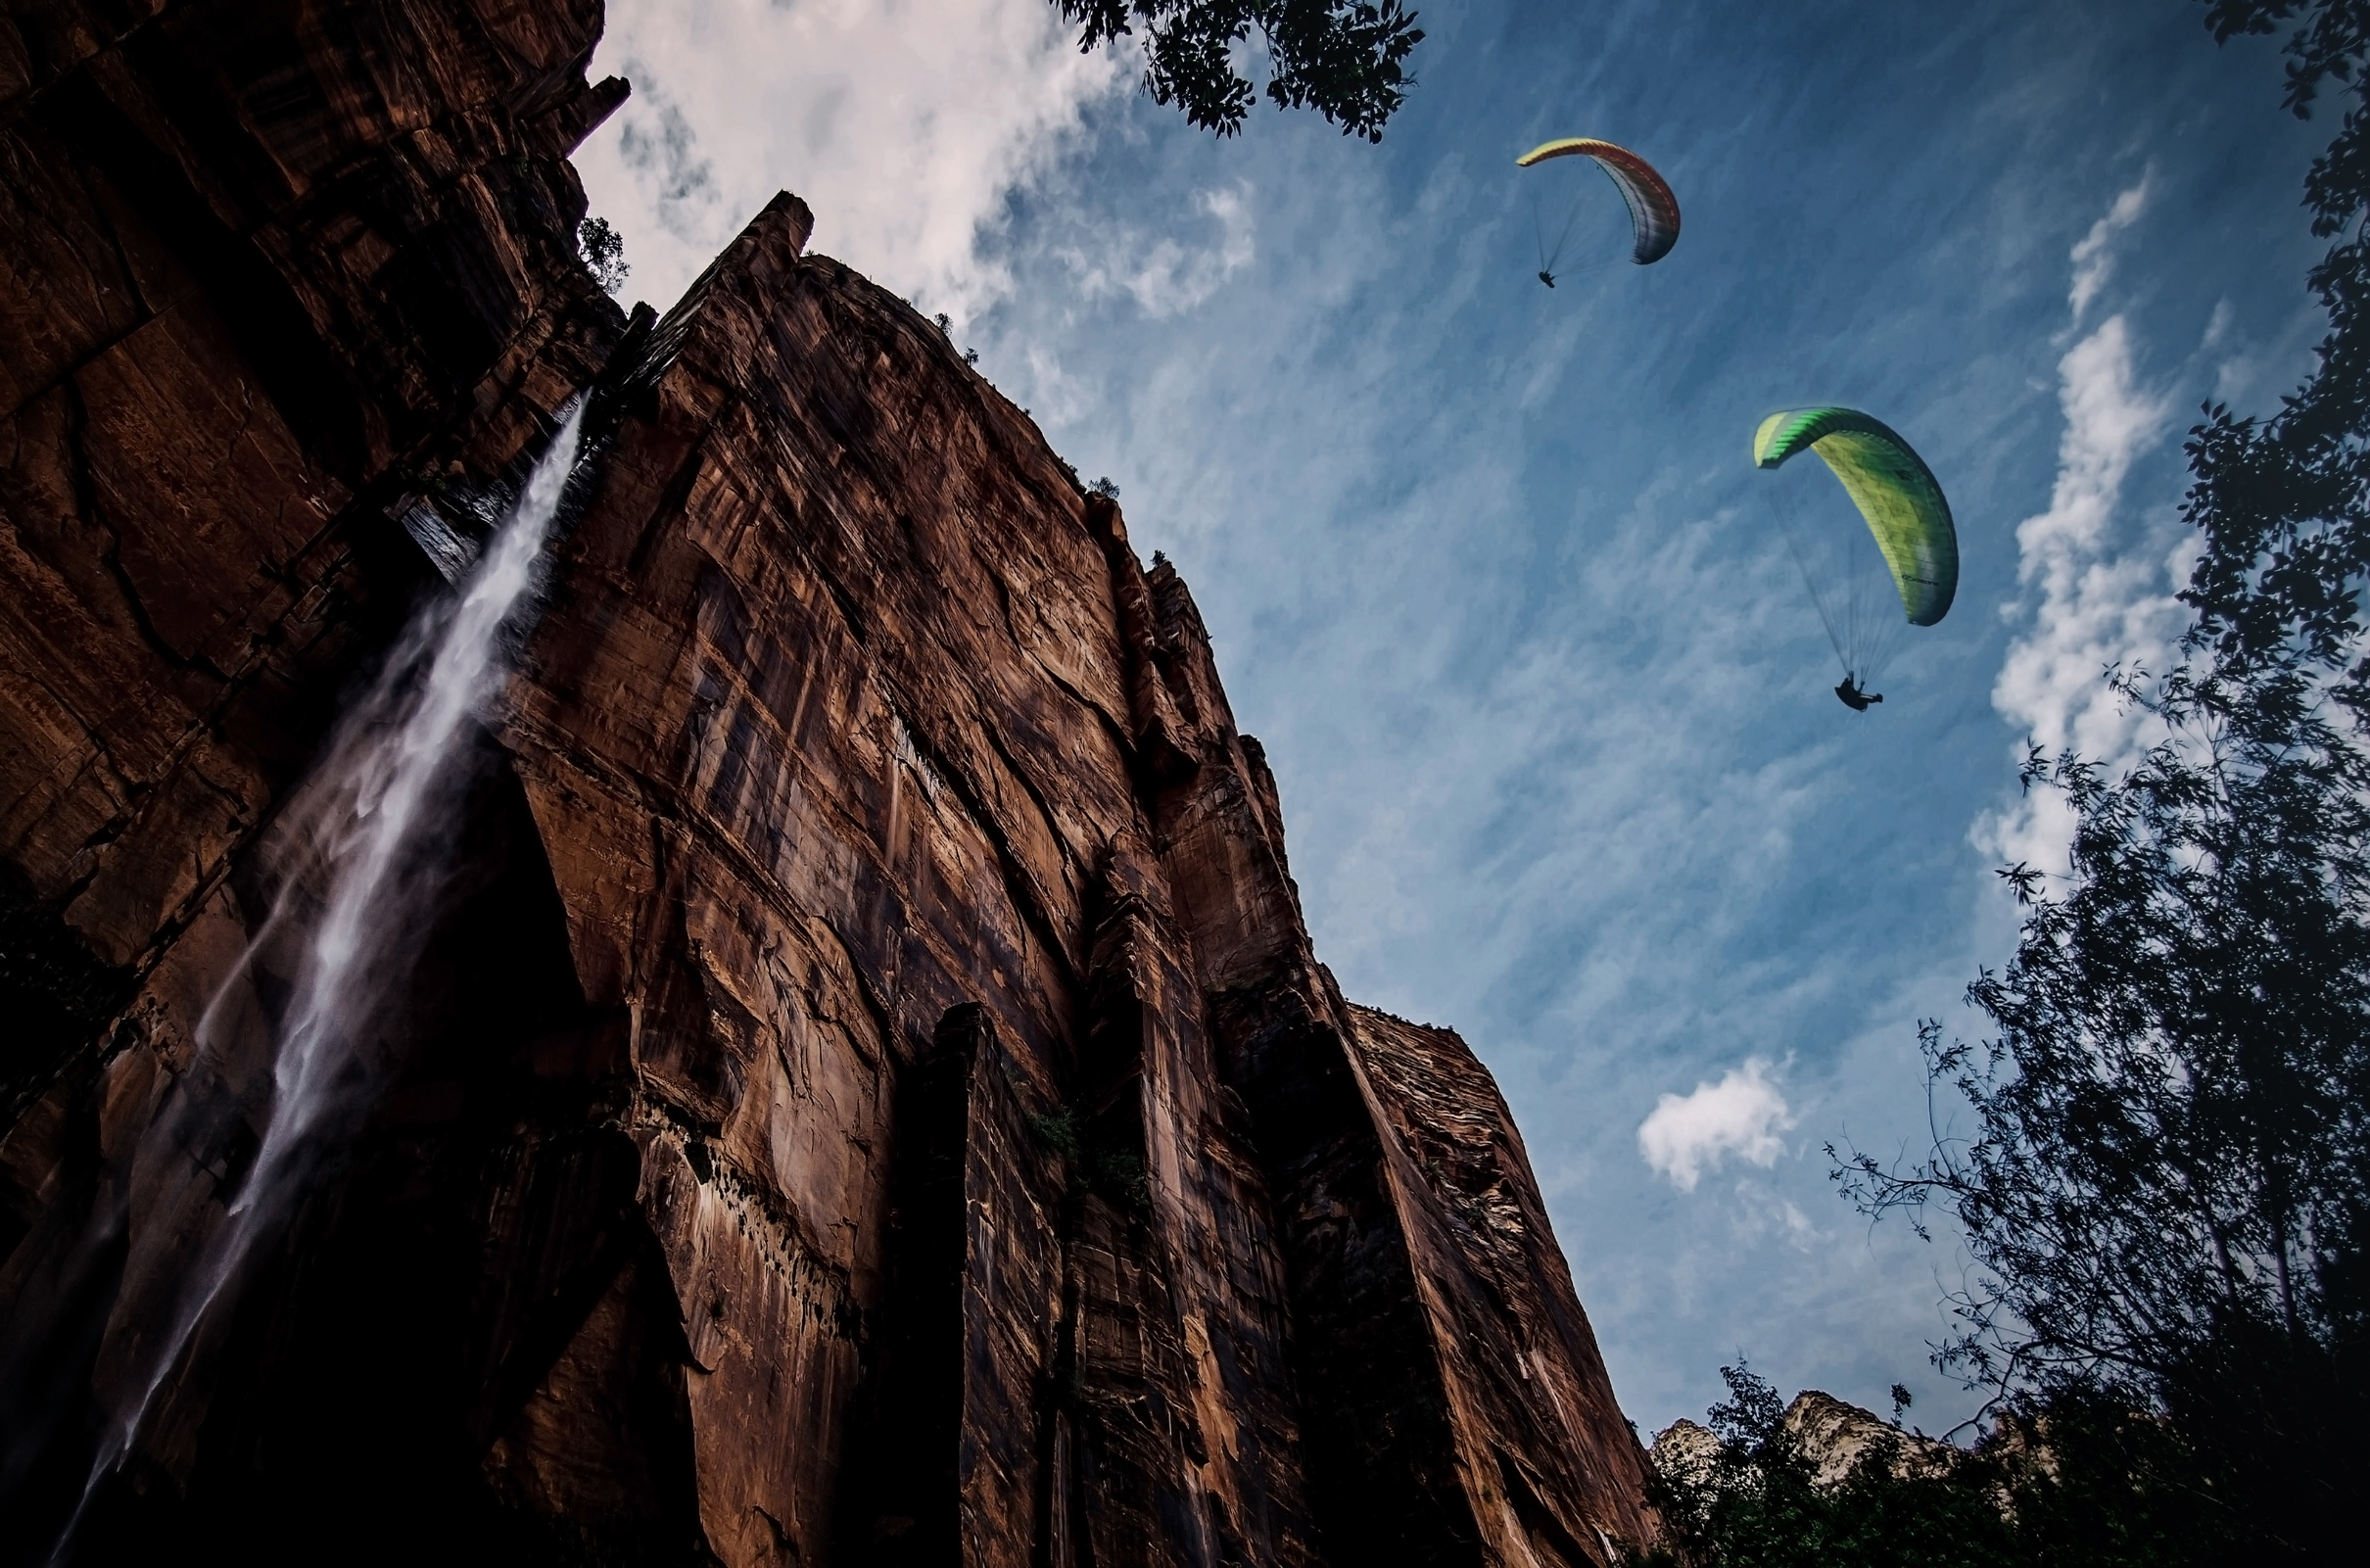 Paragliding over a waterfall photo